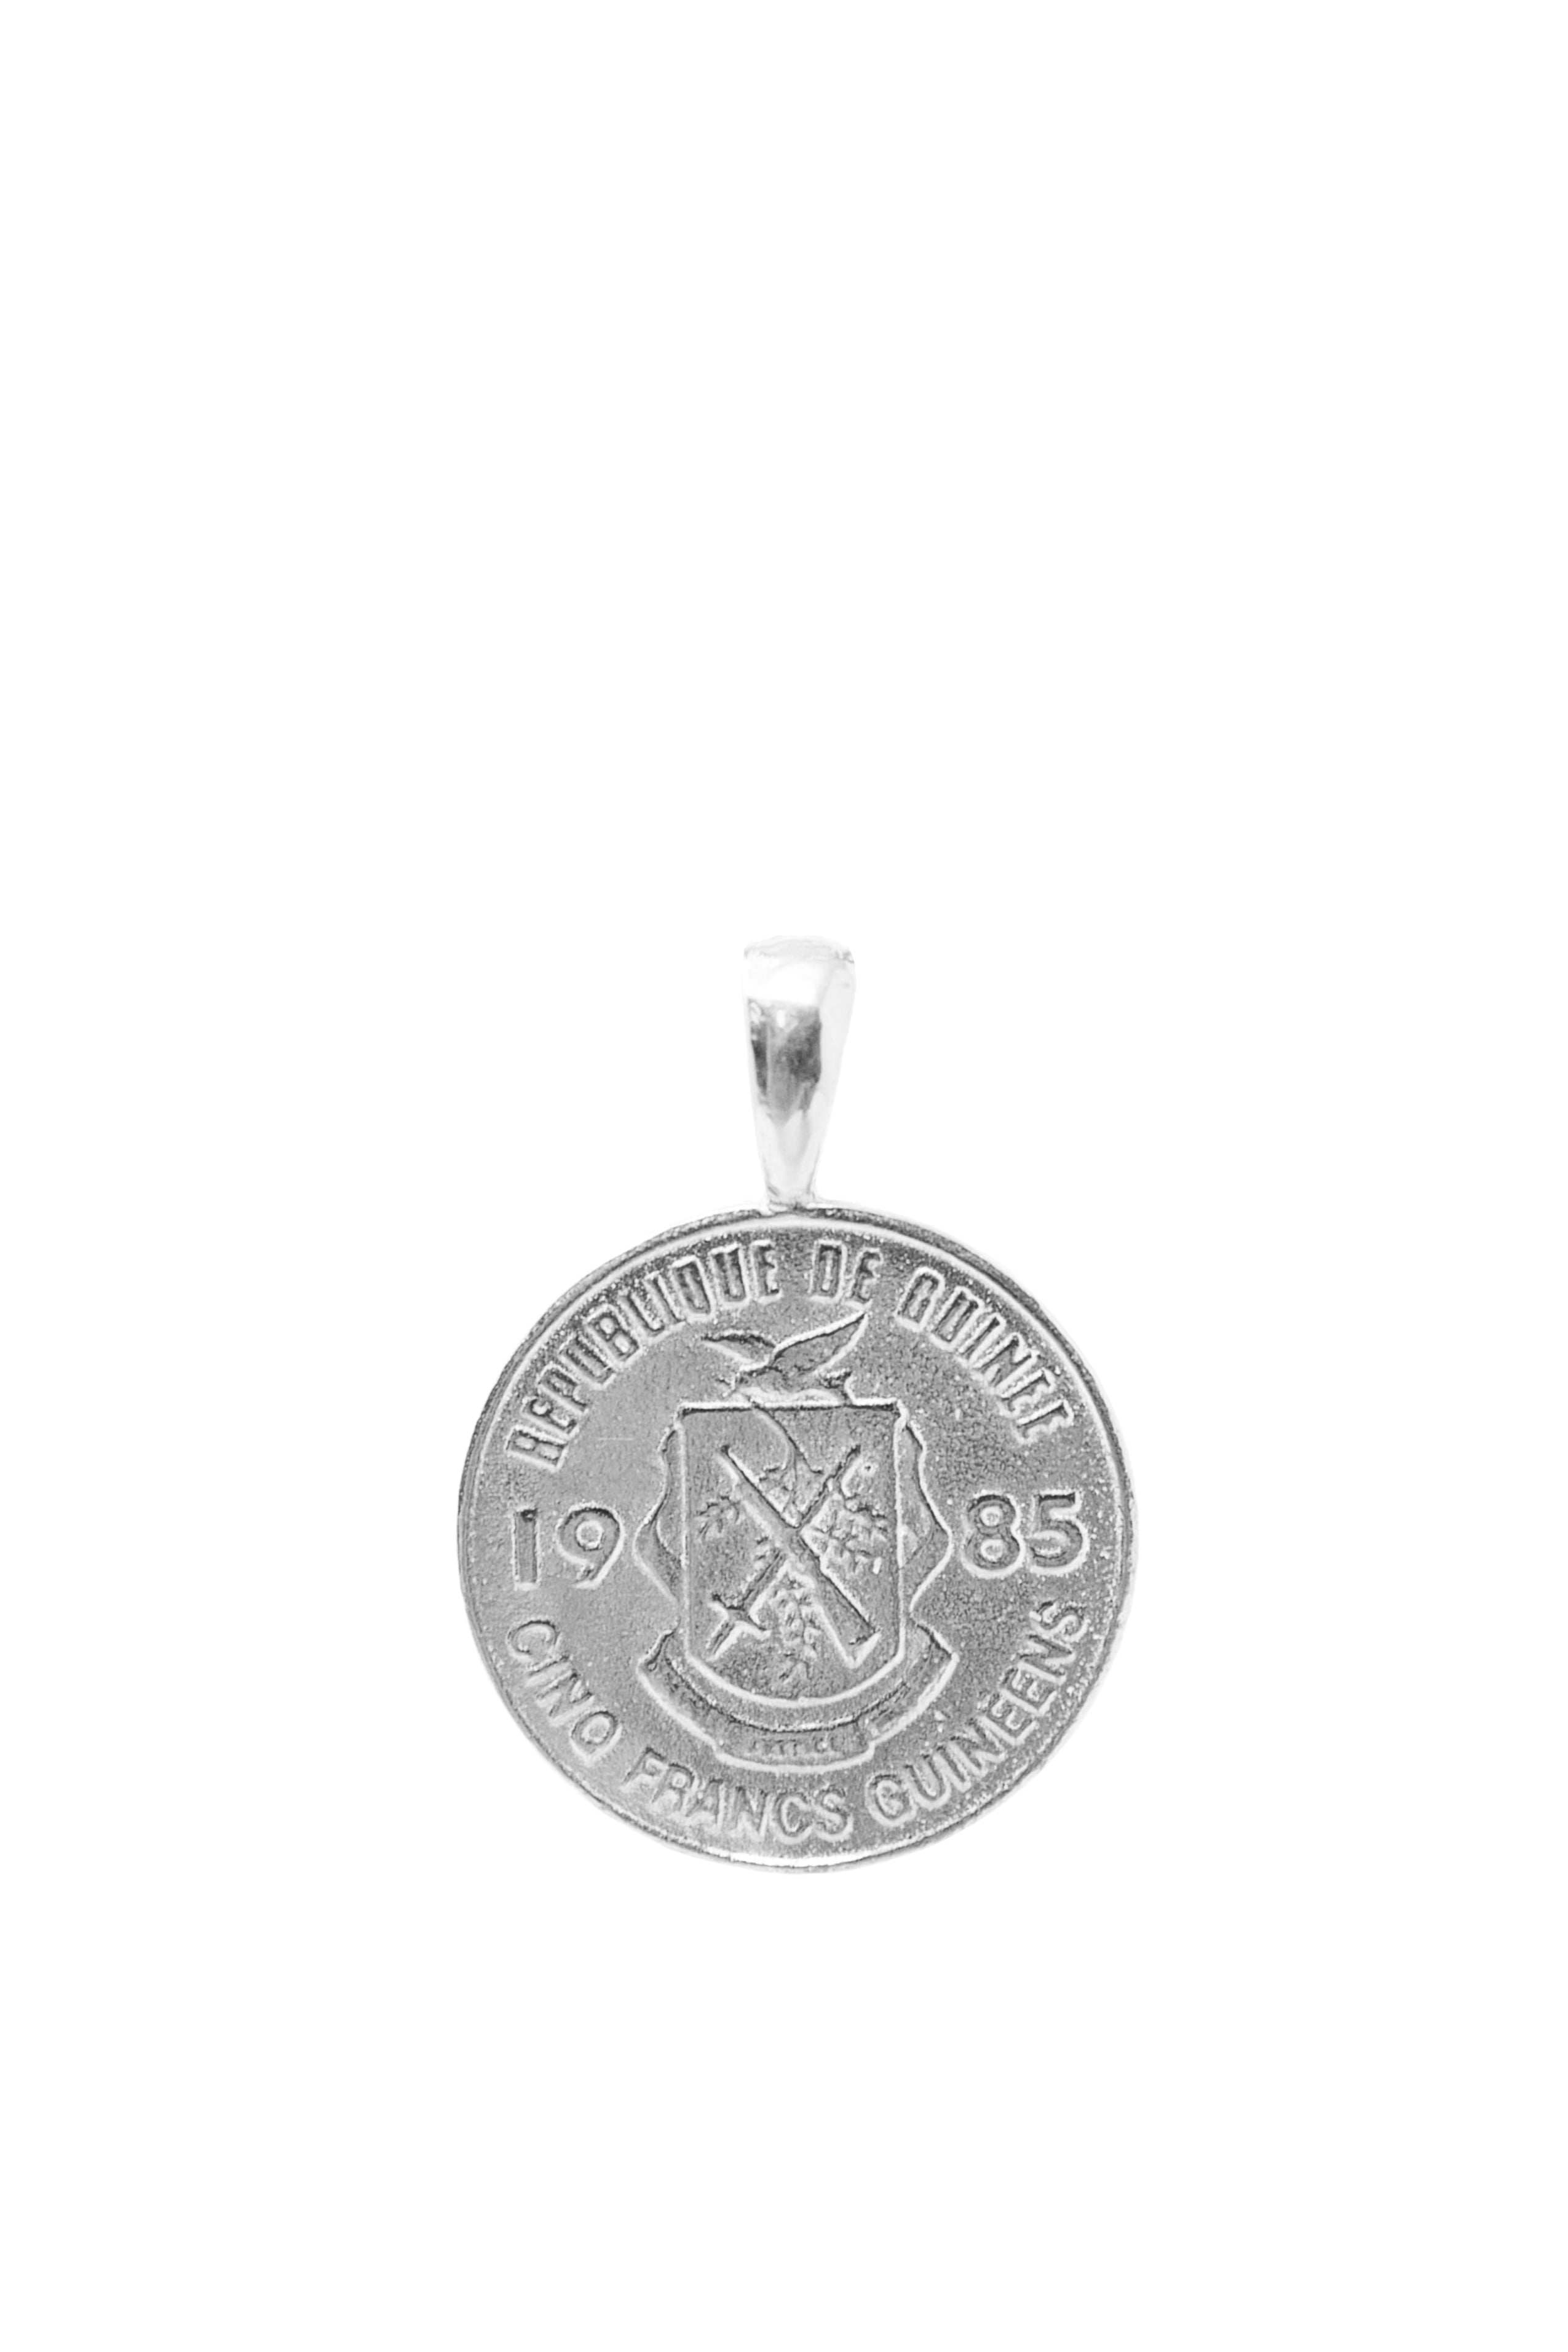 THE GUINEA Coin Pendant